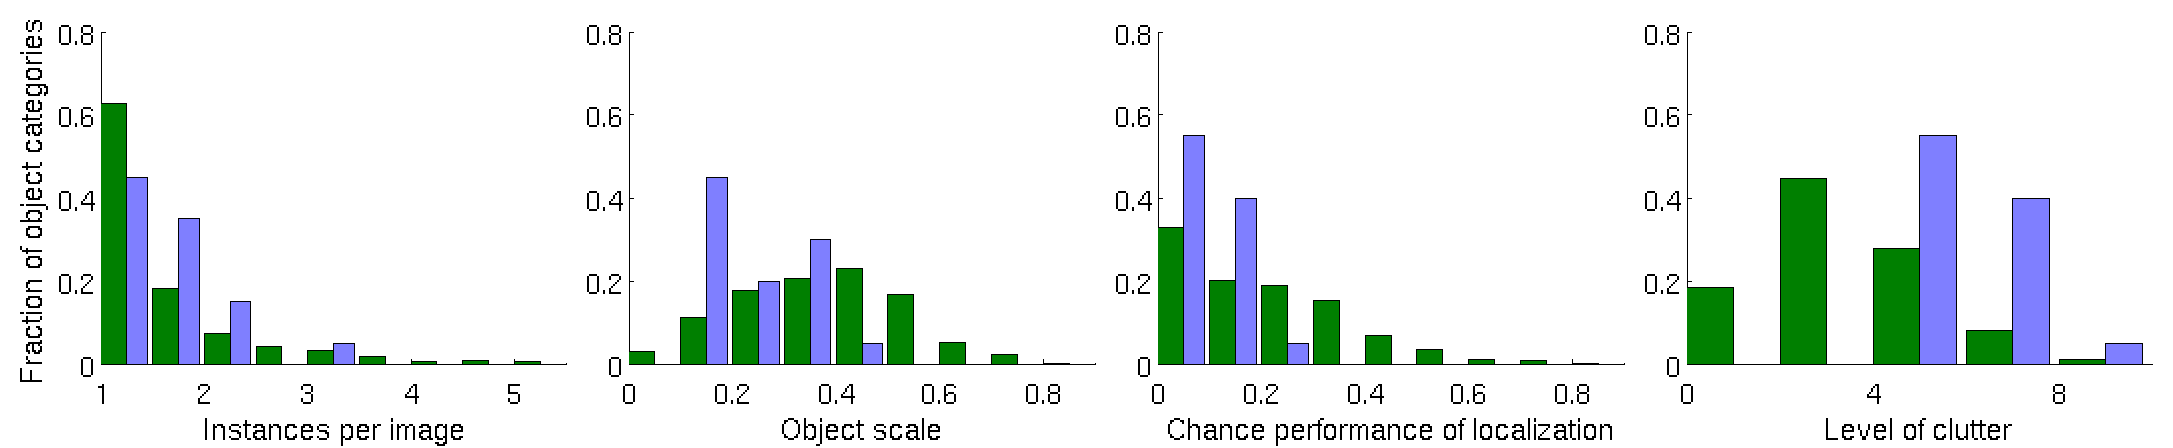 Distribution of various measures of localization difficulty on the ILSVRC2012-2014 single-object localization (dark green) and PASCAL VOC 2012 (light blue) validation sets. Object scale is fraction of image area occupied by an average object instance. Chance performance of localization and level of clutter are defined in Appendix